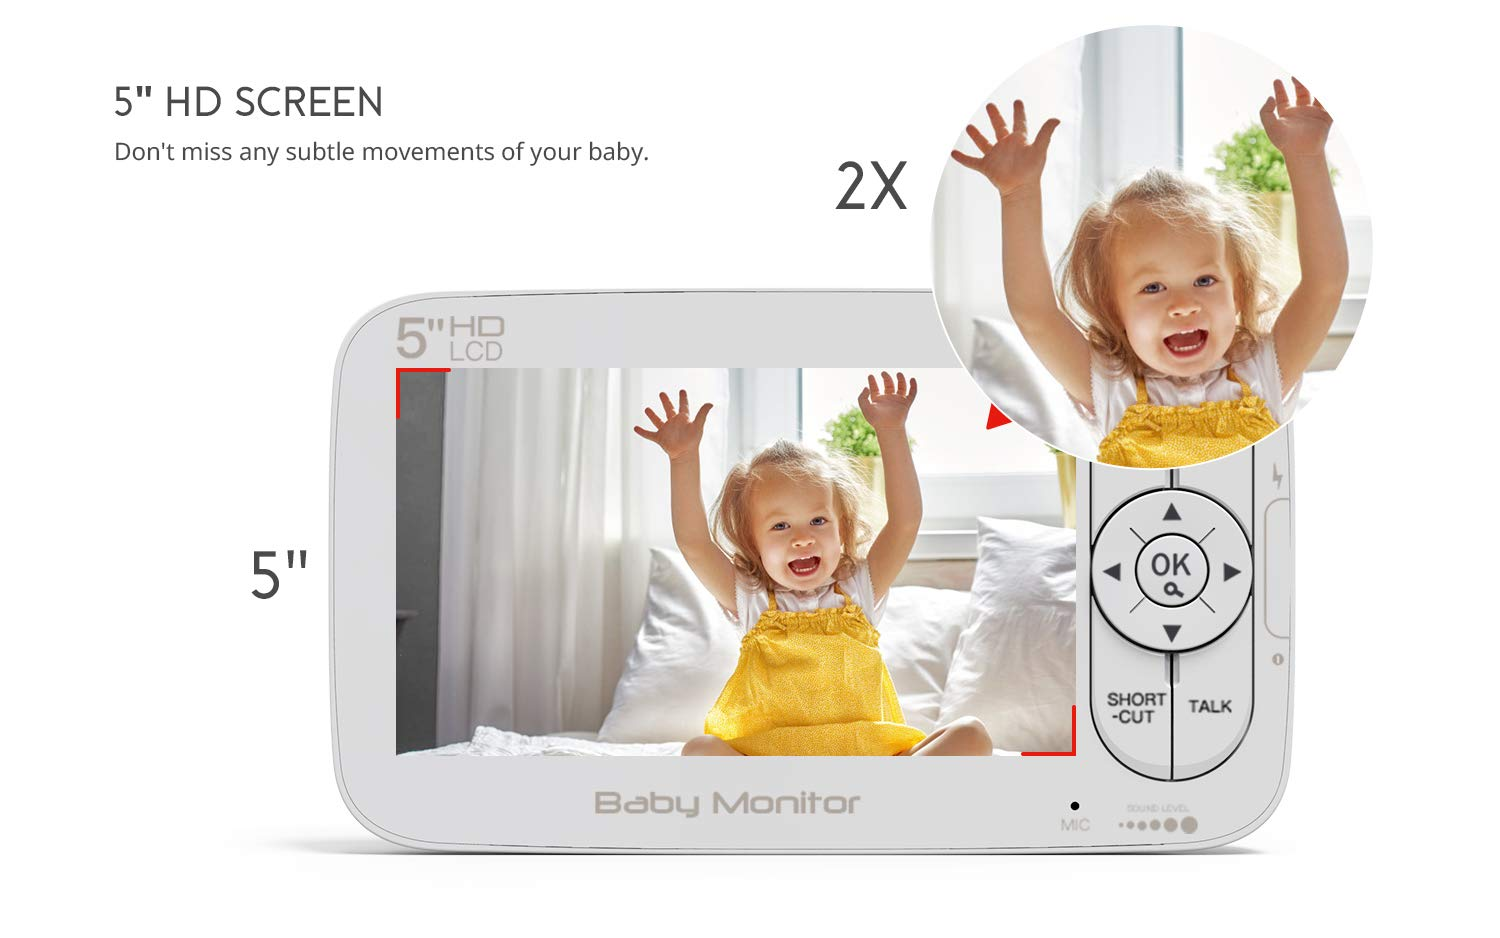 "Baby Monitor, COOAU 5"" Wireless Video Baby Monitor with 1280x720P HD Screen, 2000mAh Rechargeable Battery, Support Two-Way Audio, Infrared Night Vision, Temperature Monitor, 2.4GHz Safe Connection COOAU 👶 5"" 1280*720P HD LCD Screen with 1 Million Pixel Camera: COOAU baby monitor comes with a high quality screen and camera, bring a crystal clear view, no grainy and washed out, even in dark. 👶 Pan Tilt & 2X Zoom-in: You can adjust the angle via 355*120 degree pan/tilt remote control, zoom right in and see if your baby's eyes were opened or closed without any issue. 👶 Infrared Invisible Night Vision: Using 940nm infrared light, effectively protect your baby's eyes. Up to 5 meters night vision viewing distance, pick up images of your baby in dark or low light conditions. 3"